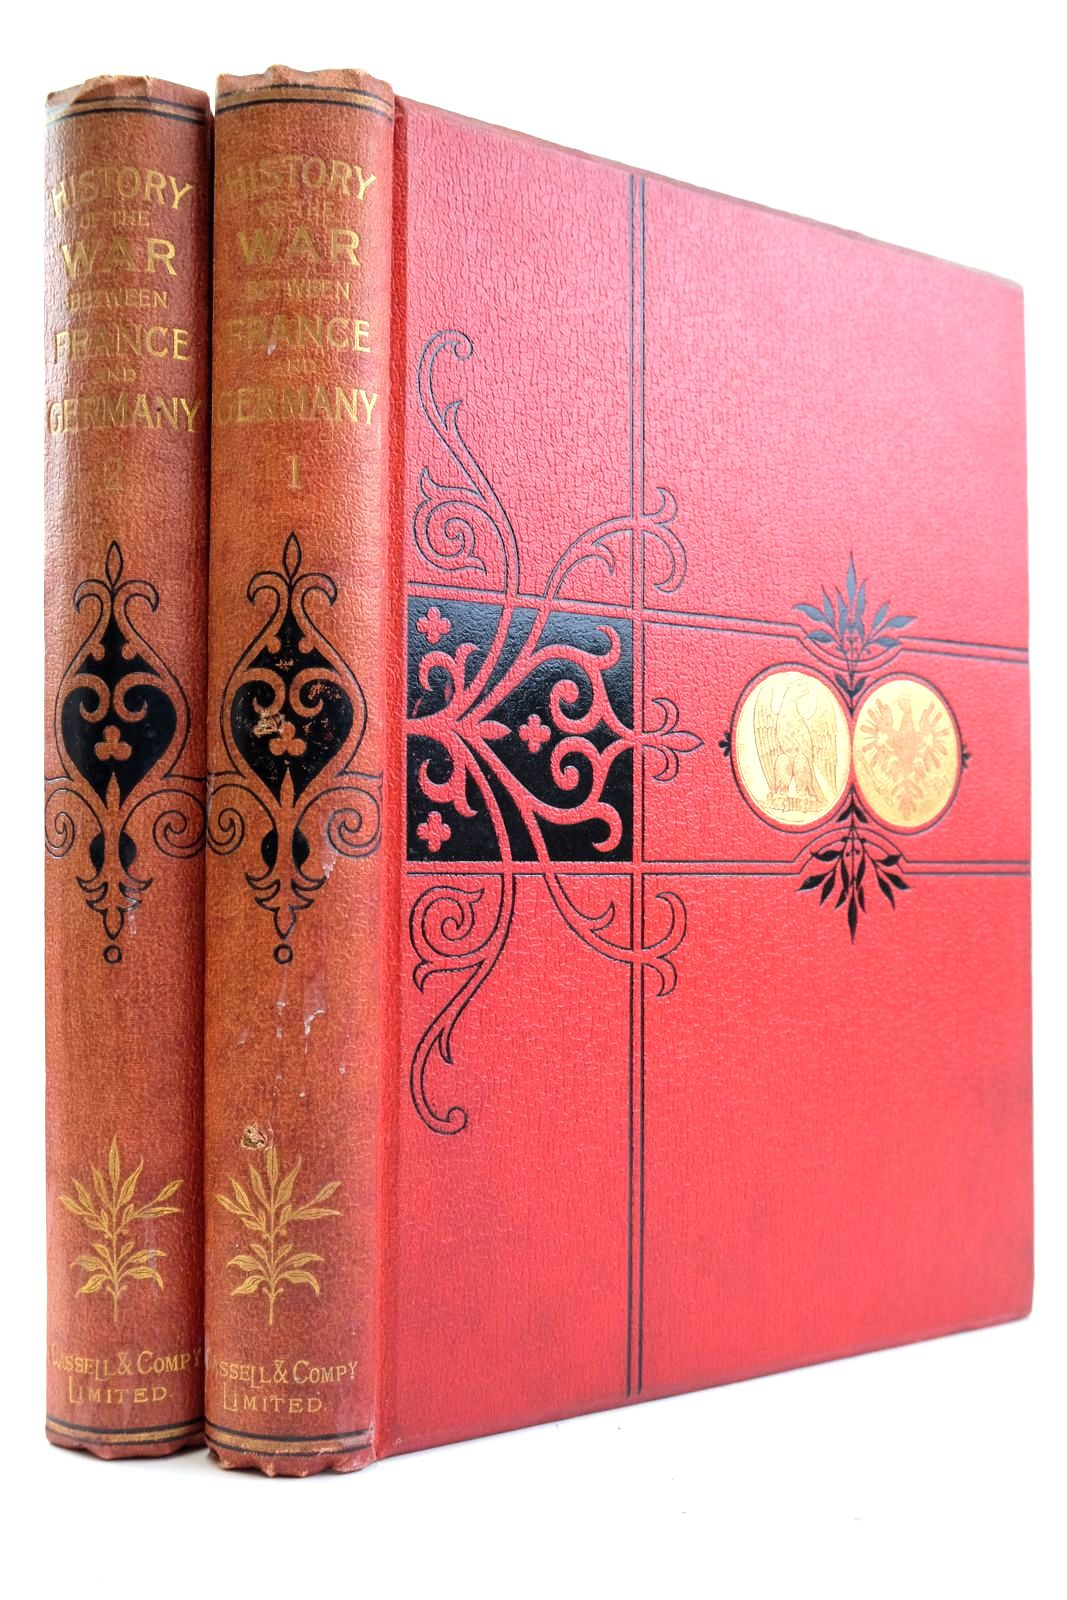 Photo of CASSELL'S HISTORY OF THE WAR BETWEEN FRANCE AND GERMANY 1870 - 1871 (2 VOLUMES) published by Cassell & Company Limited (STOCK CODE: 2133252)  for sale by Stella & Rose's Books